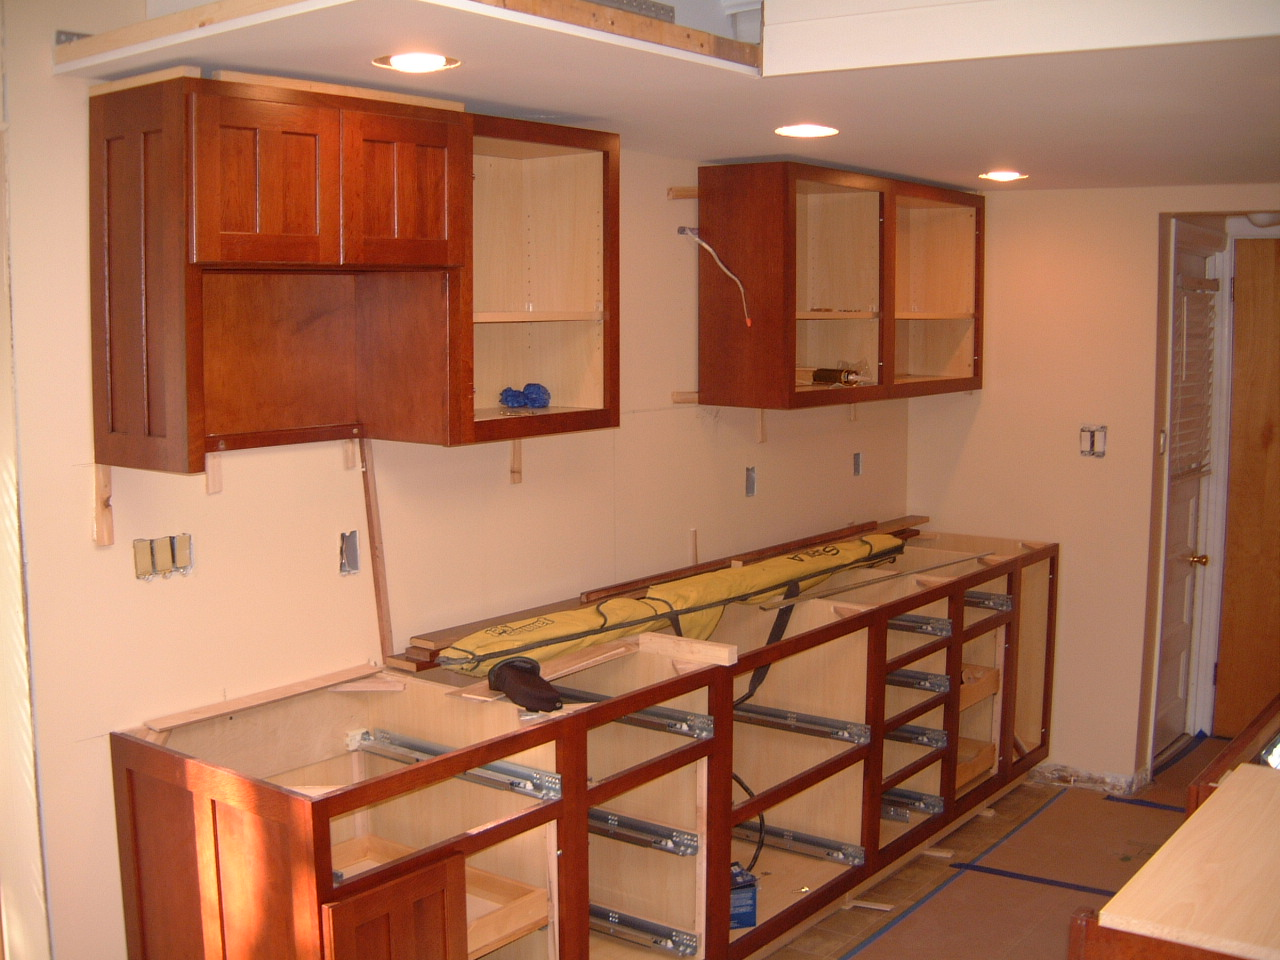 kitchen remodeling replacing kitchen countertops Springfield Kitchen Remodel